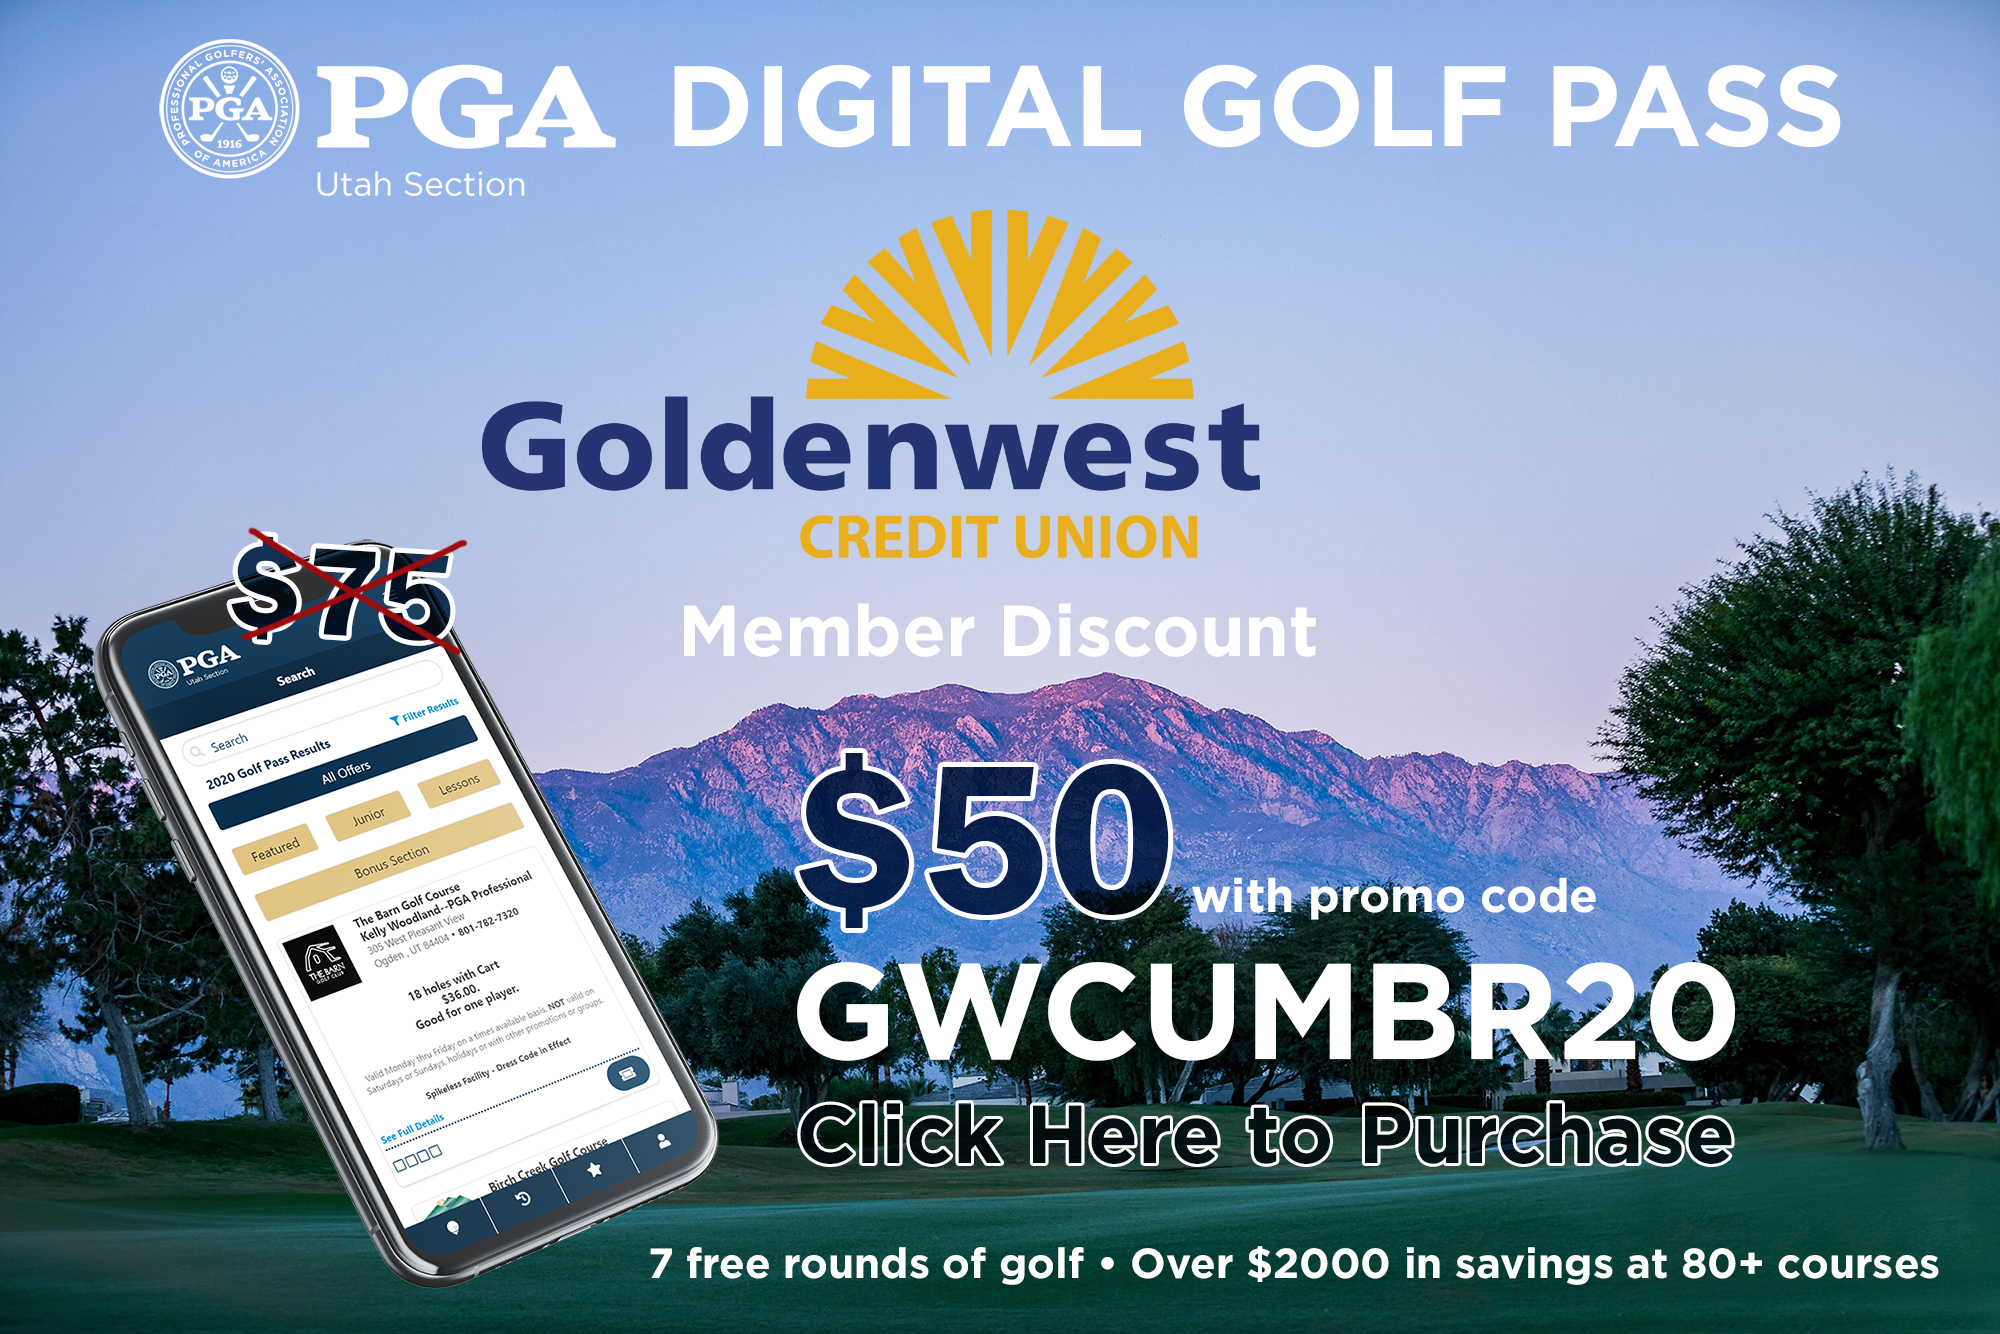 Save $25 with Promo Code GWCUMBR20